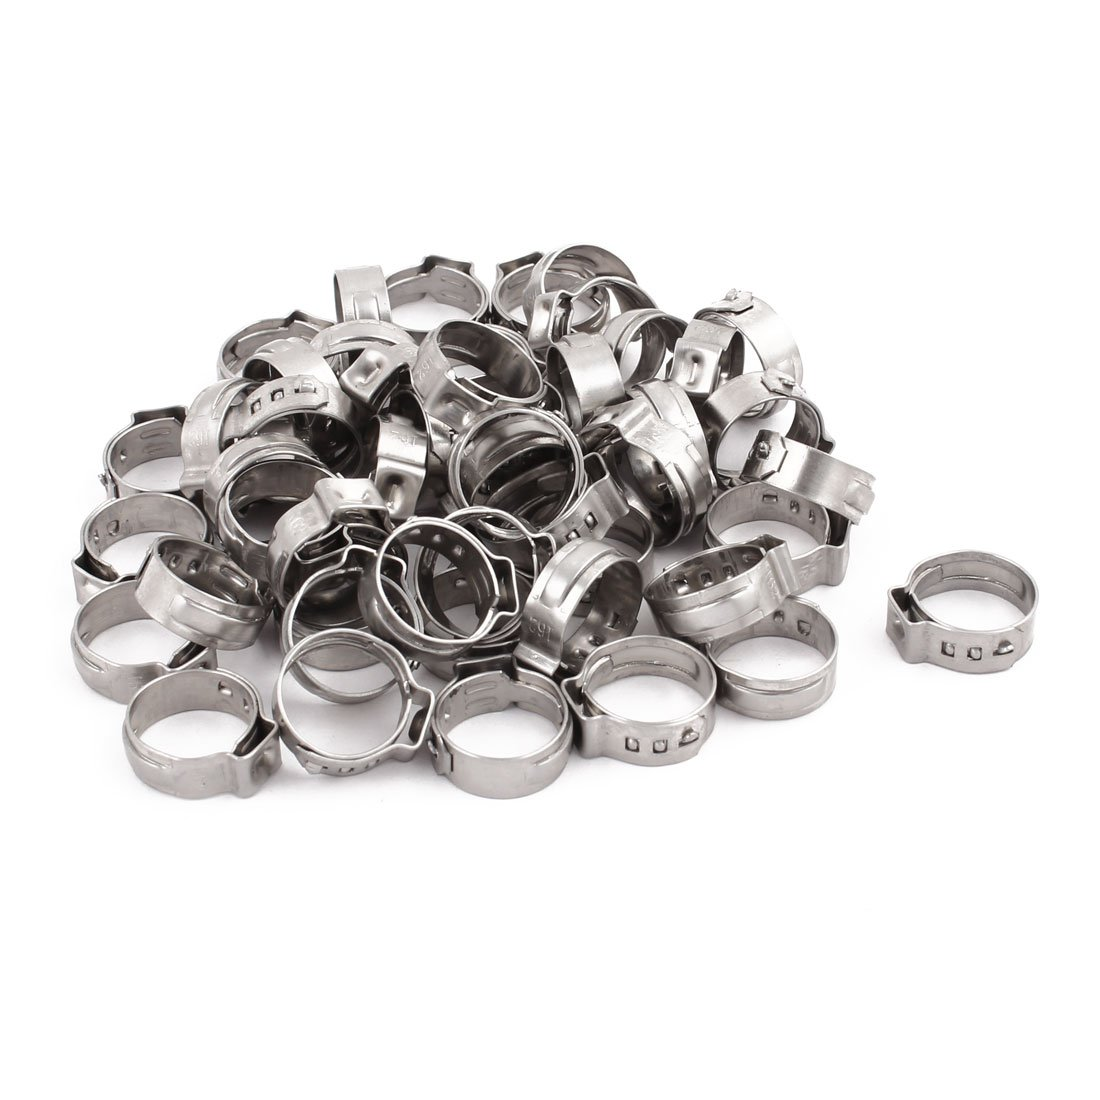 uxcell 13.7mm-16.2mm 304 Stainless Steel Adjustable Tube Hose Clamps Silver Tone 50pcs